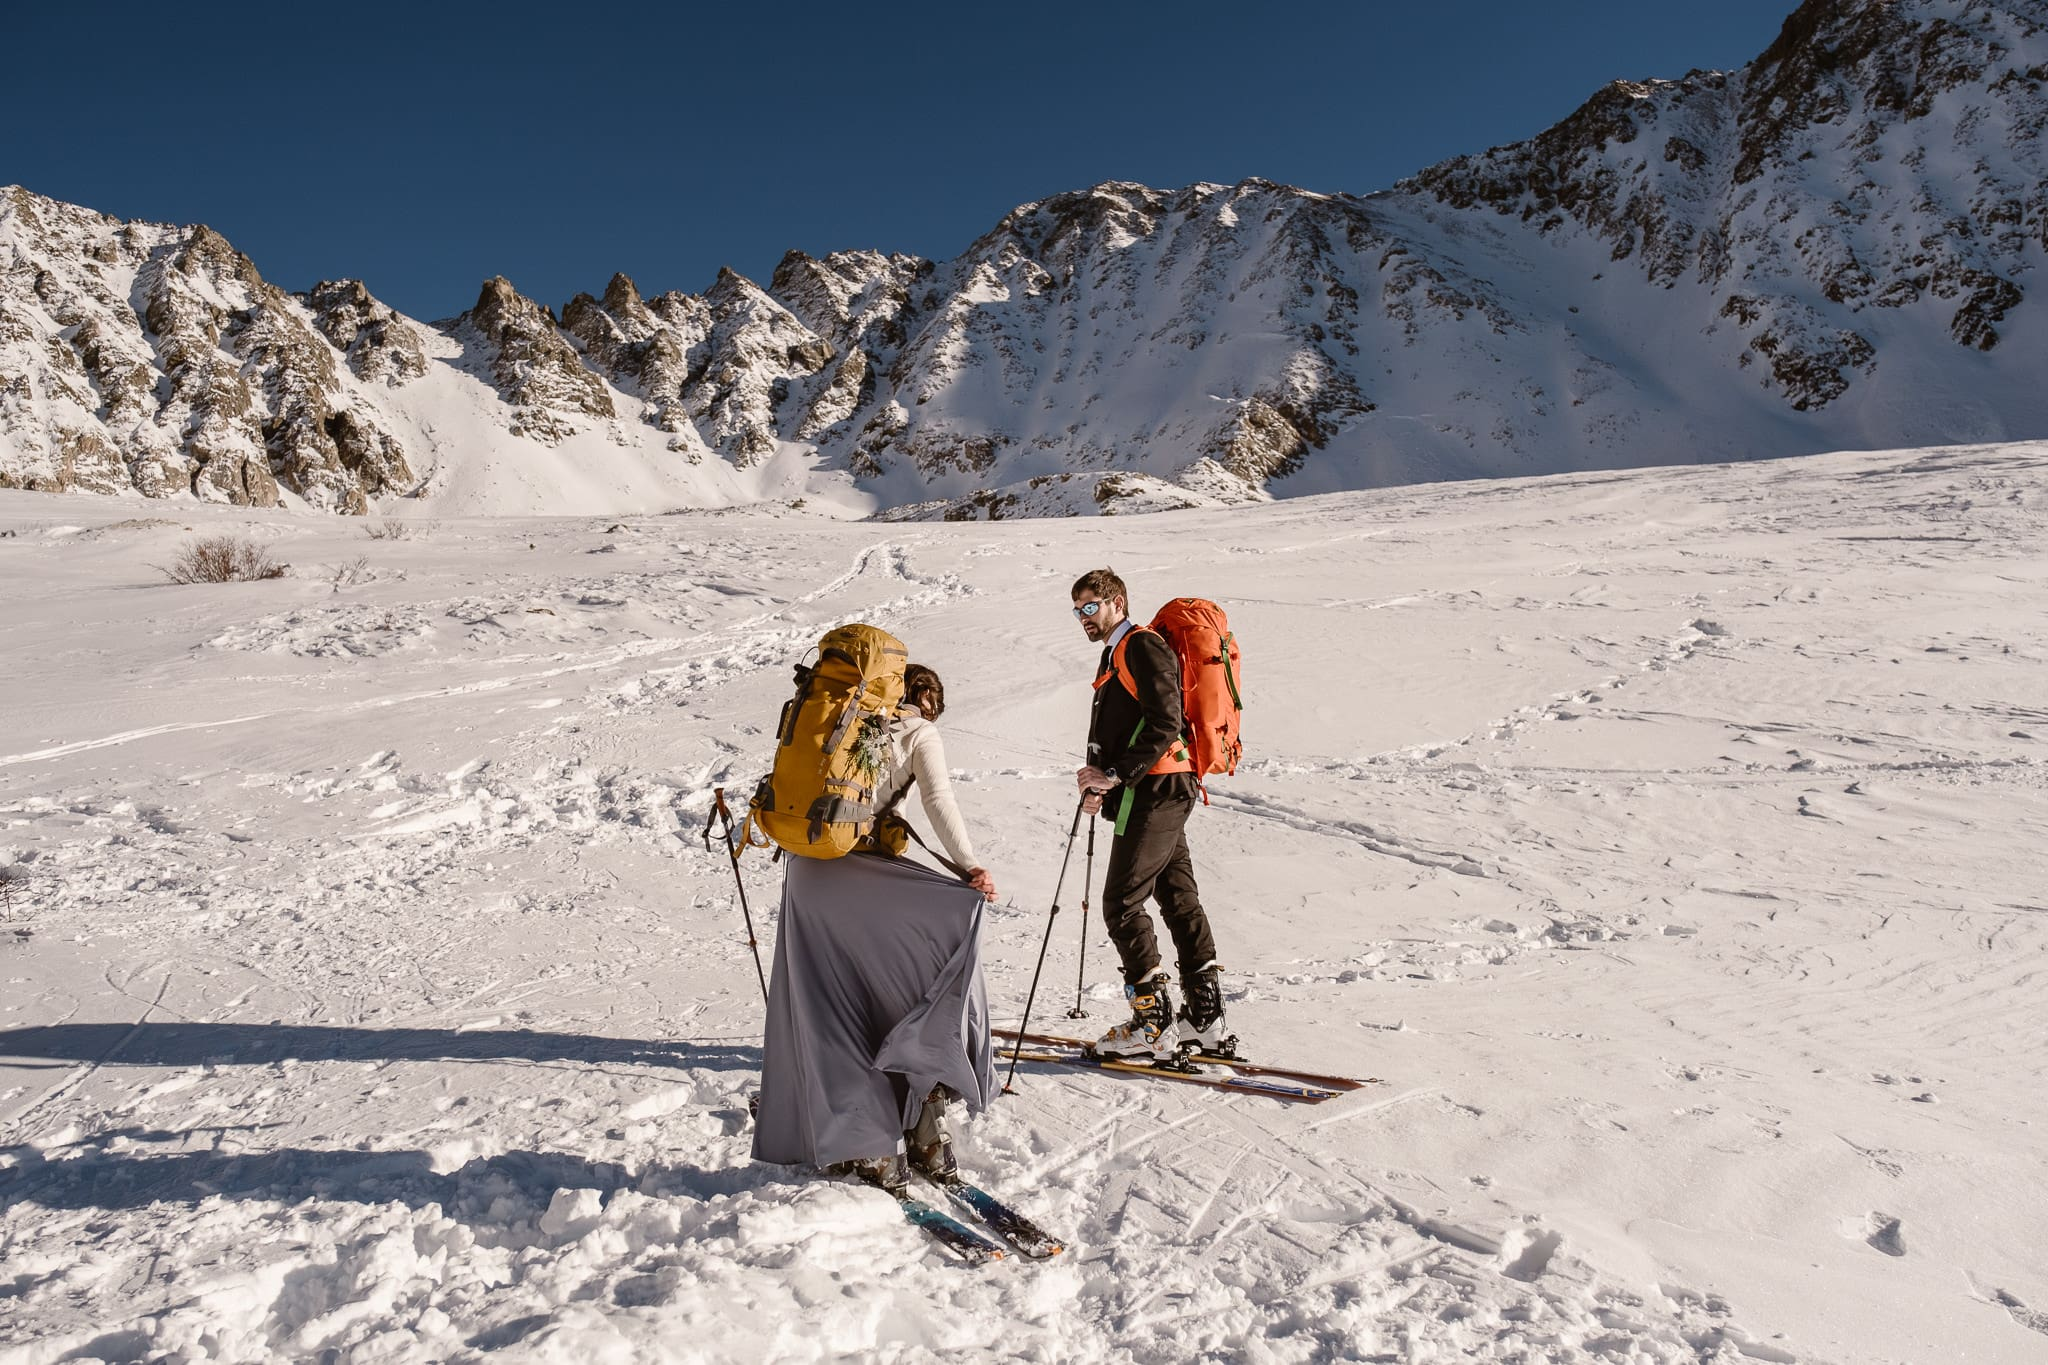 Bride and groom backcountry skiing in the Colorado mountains, Leadville elopement, bride skiing in wedding dress